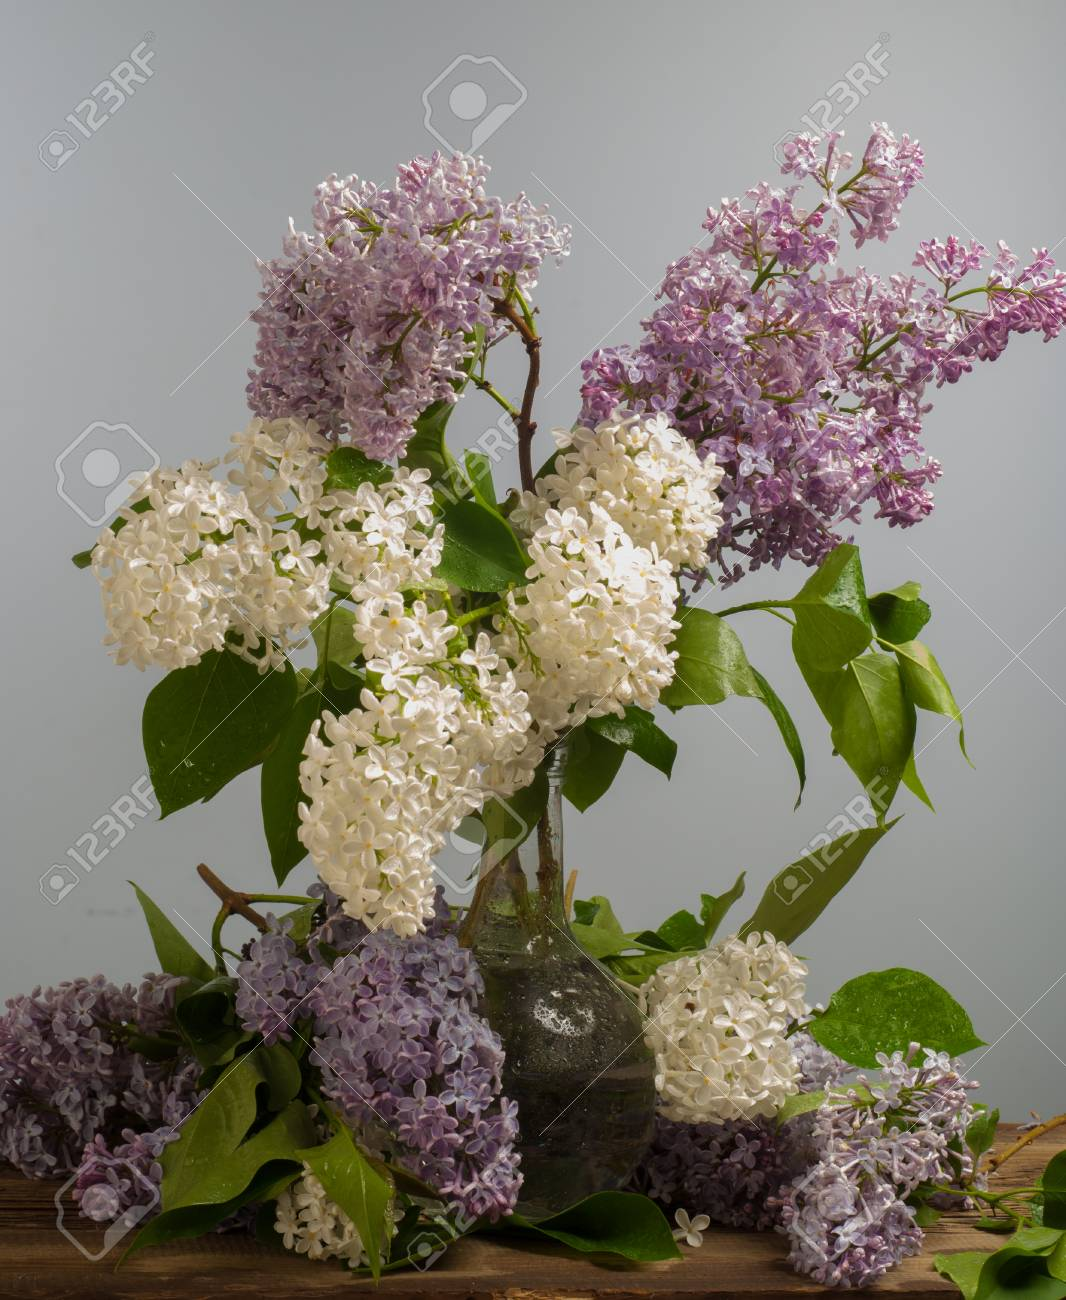 Shrubs with purple flowers at end of branch - Lilac Flowers Large Garden Shrub With Purple Or White Fragrant Flowers Stock Photo